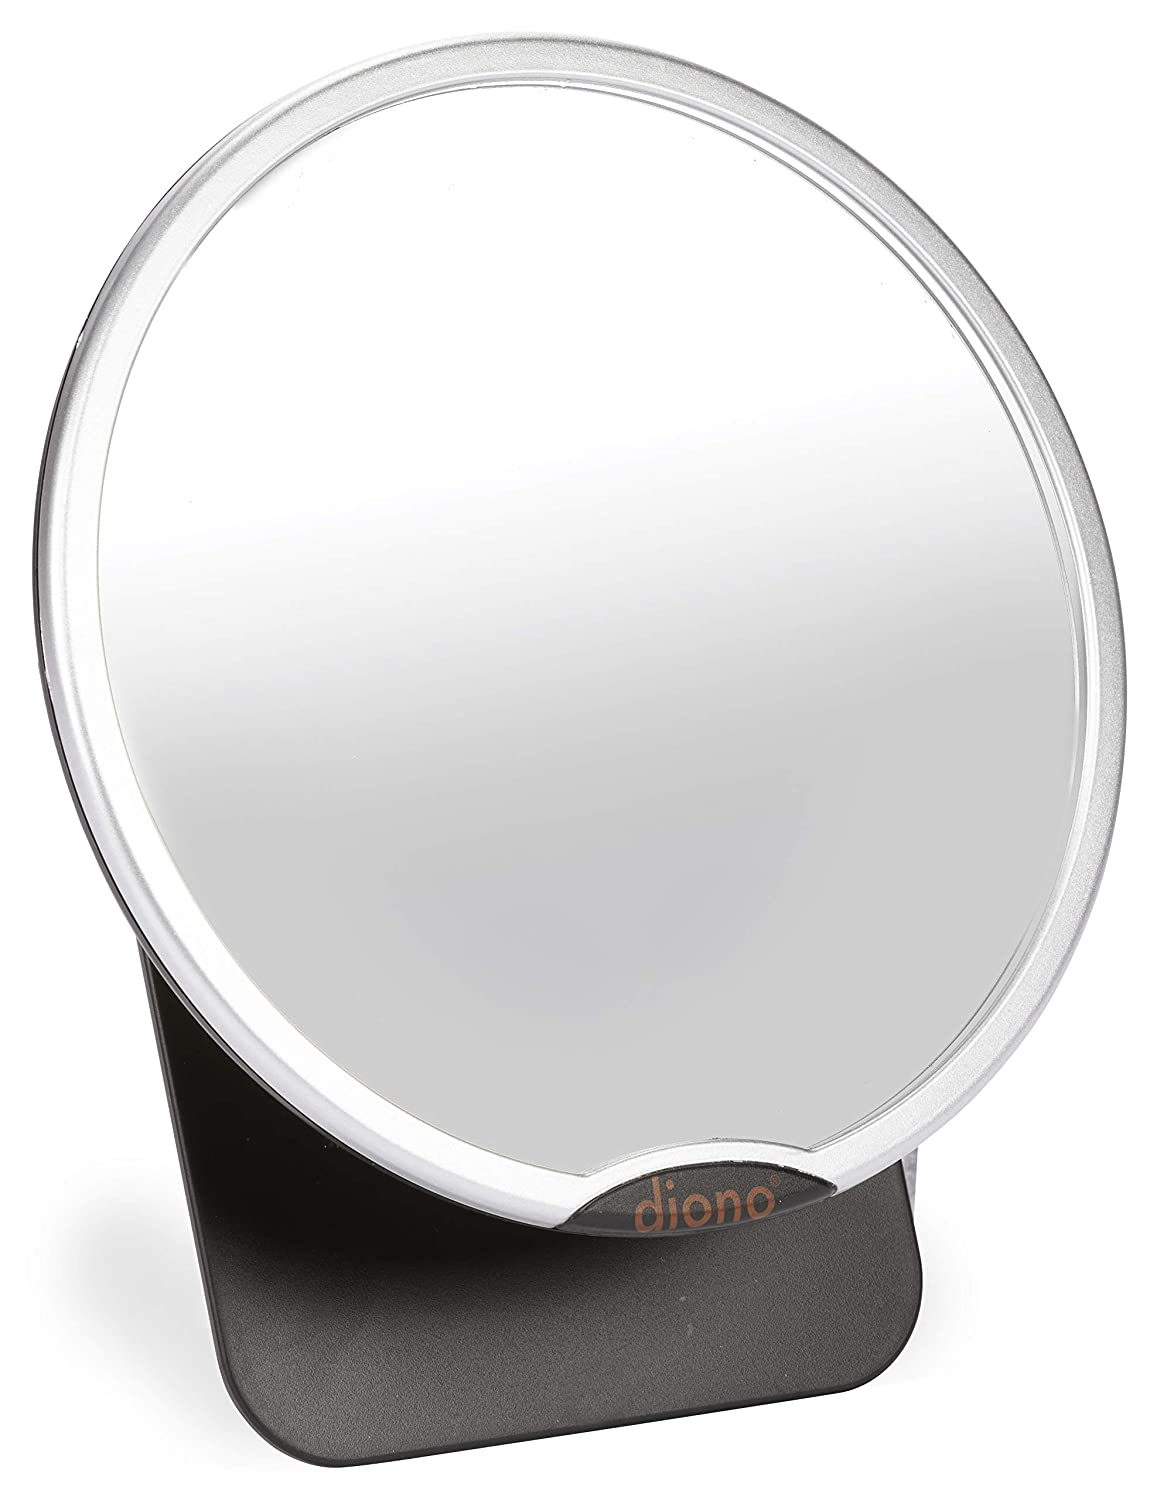 Diono Easy View Back Seat Mirror, Black (Discontinued by Manufacturer)